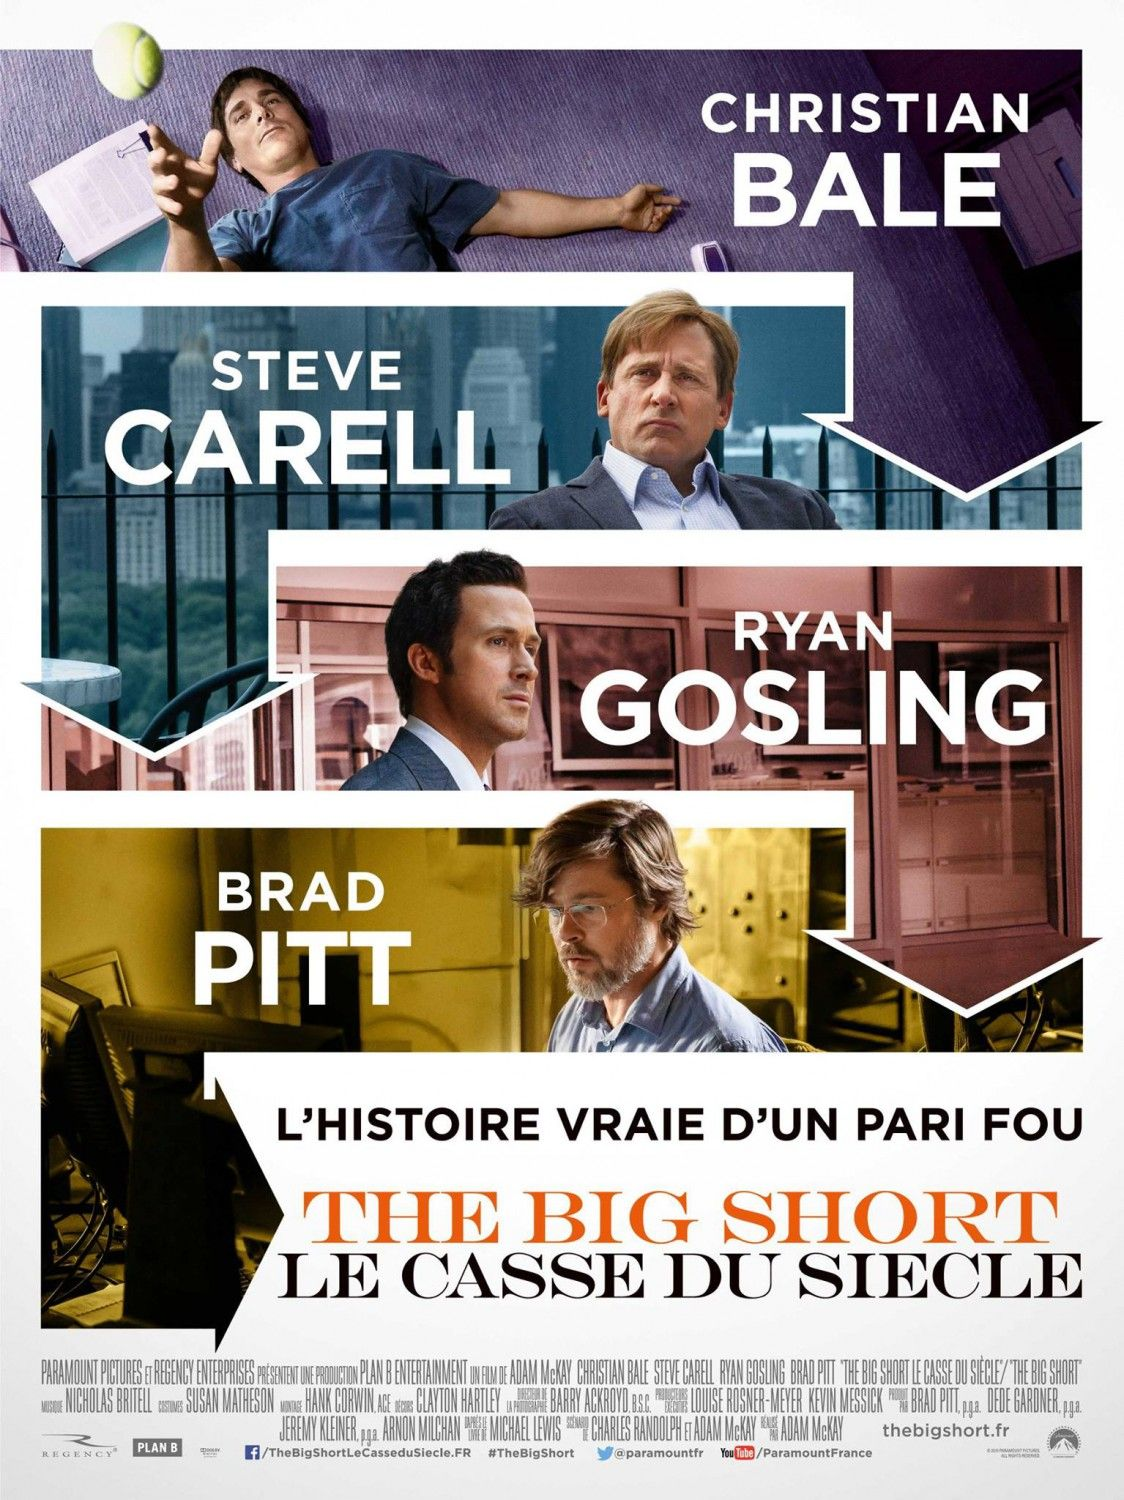 New The Big Short Trailer Featurettes And Posters The Big Short Short Movie Full Movies Online Free